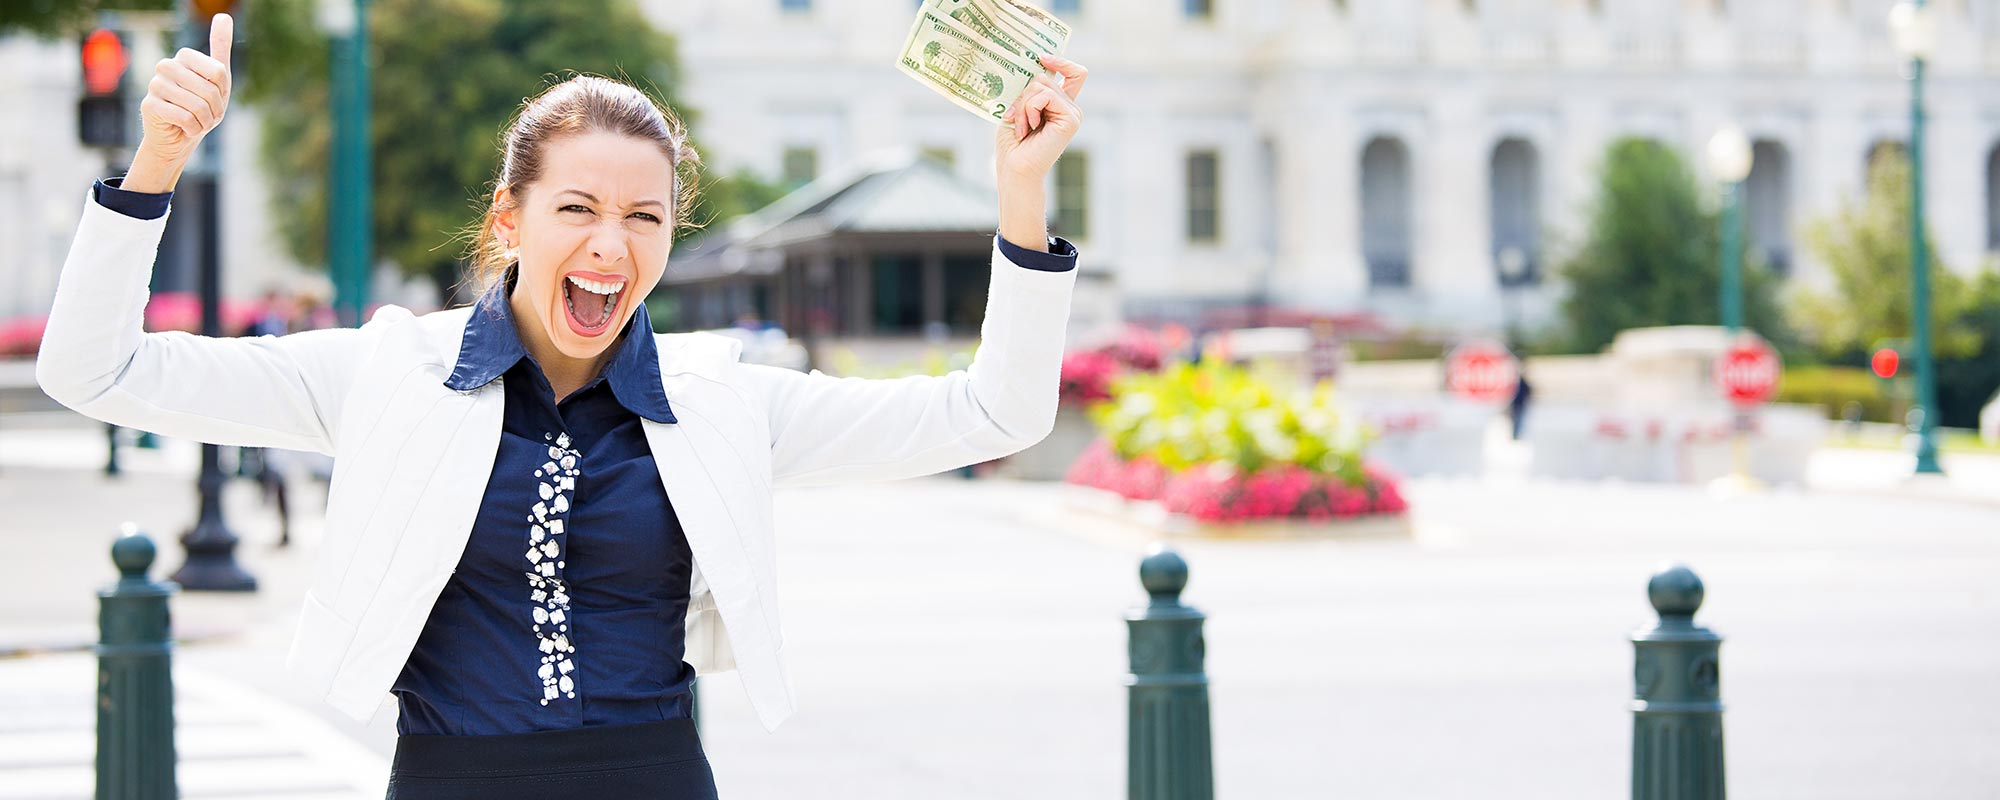 Four Questions to Ask When Negotiating Salary